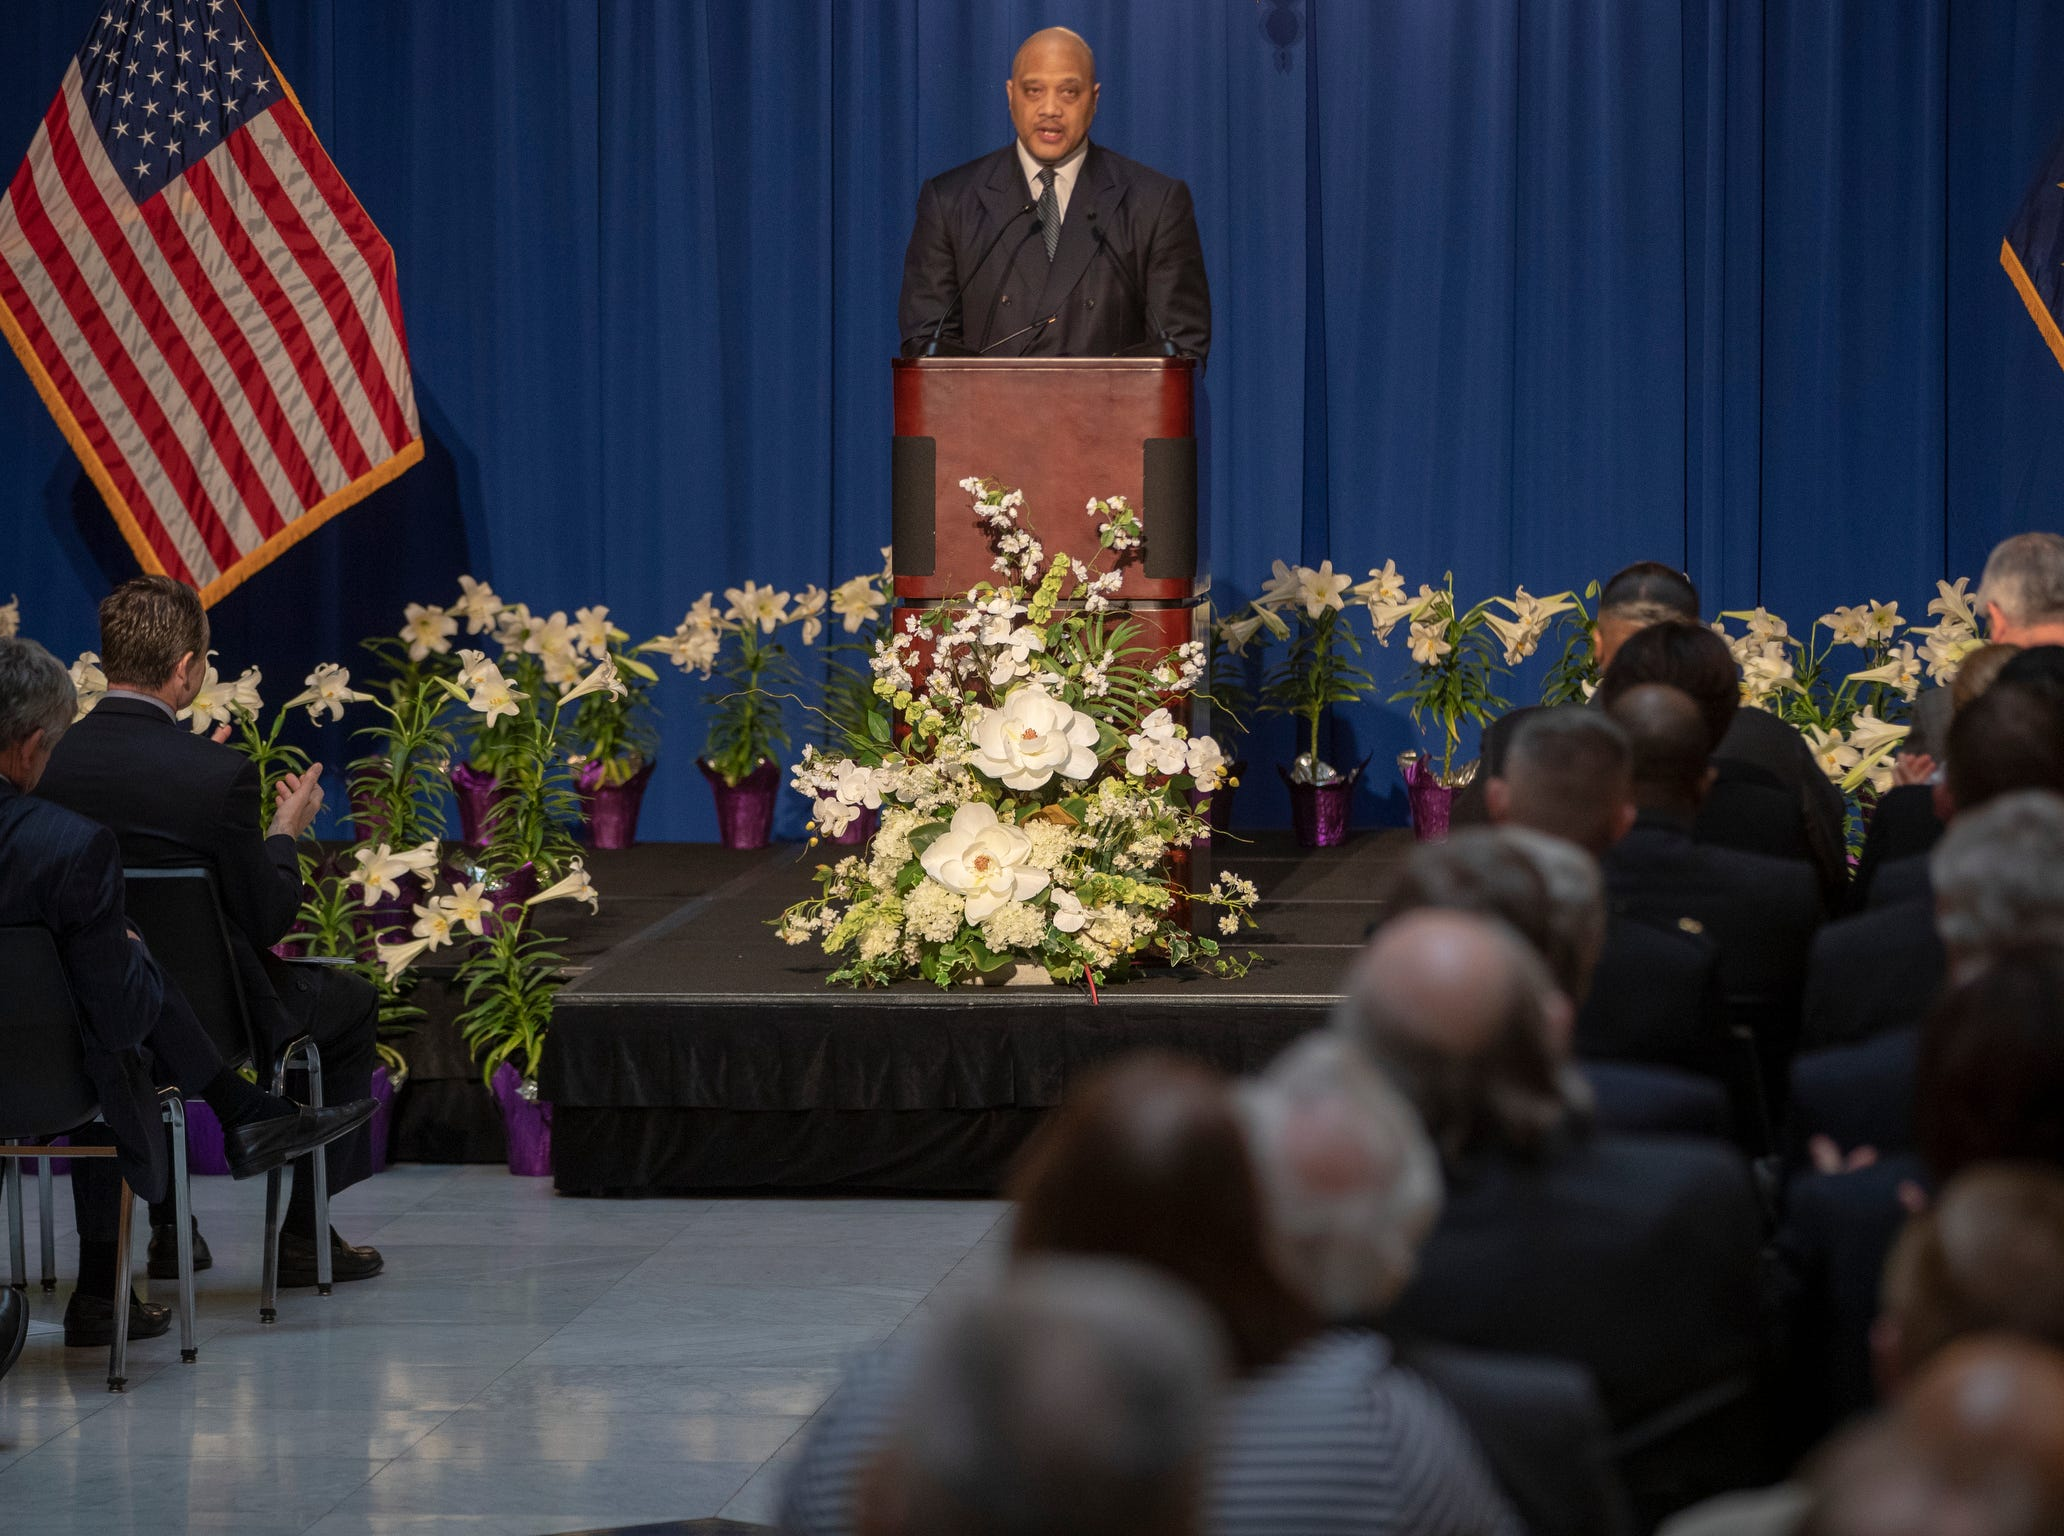 Andre Carson, U.S. House of Representatives speak during a service for Indiana's Birch Bayh, who died on March 14, and was a three-term U.S. Senator, Indiana Statehouse, Indianapolis, Wednesday, May 1, 2019.